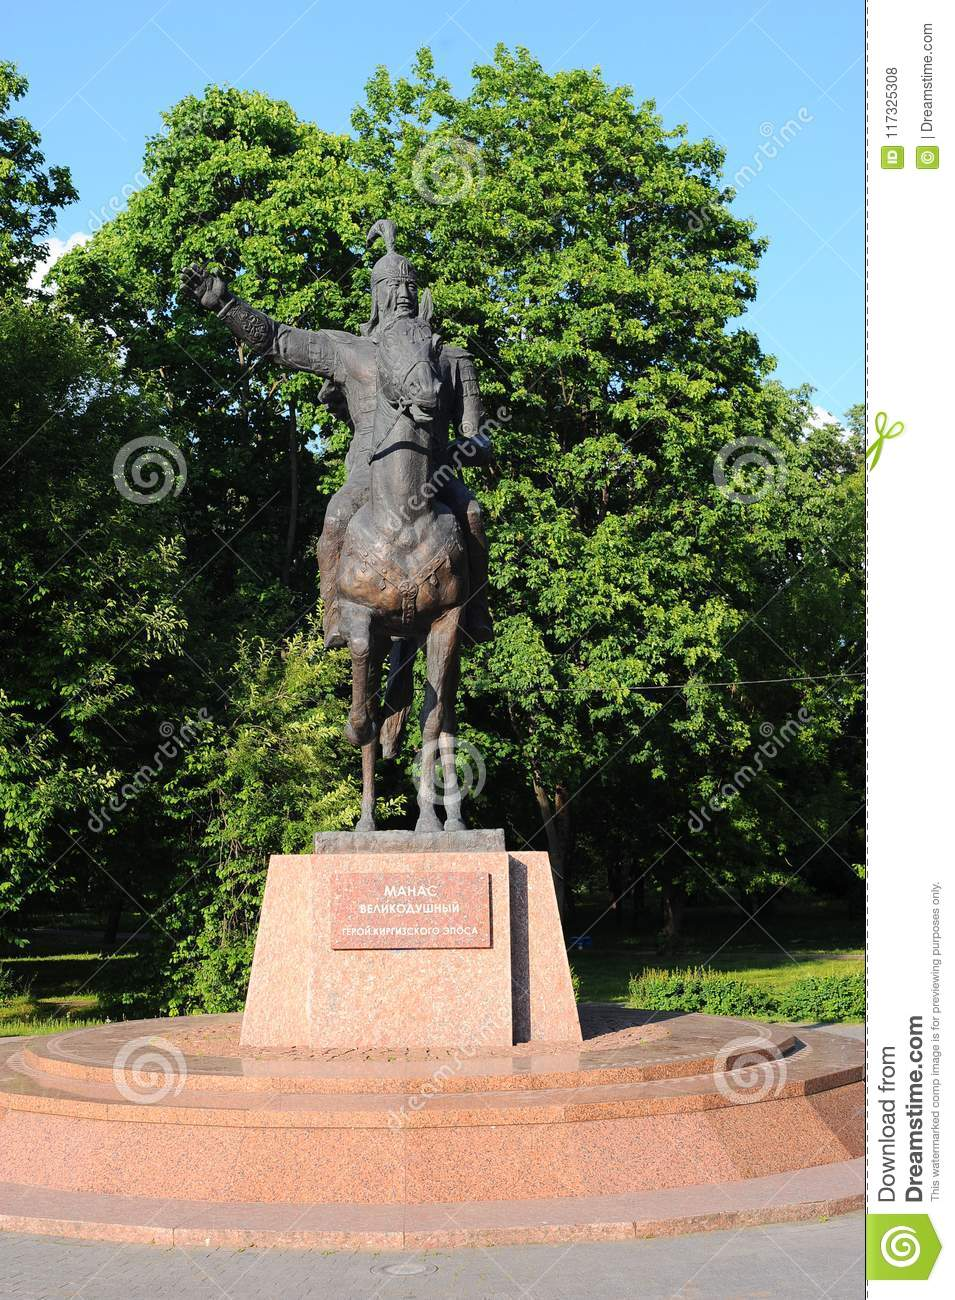 Monument to Manas the Magnanimous, the hero of the Kirghiz epic is set in the Park of Friendship, Moscow, Russia.